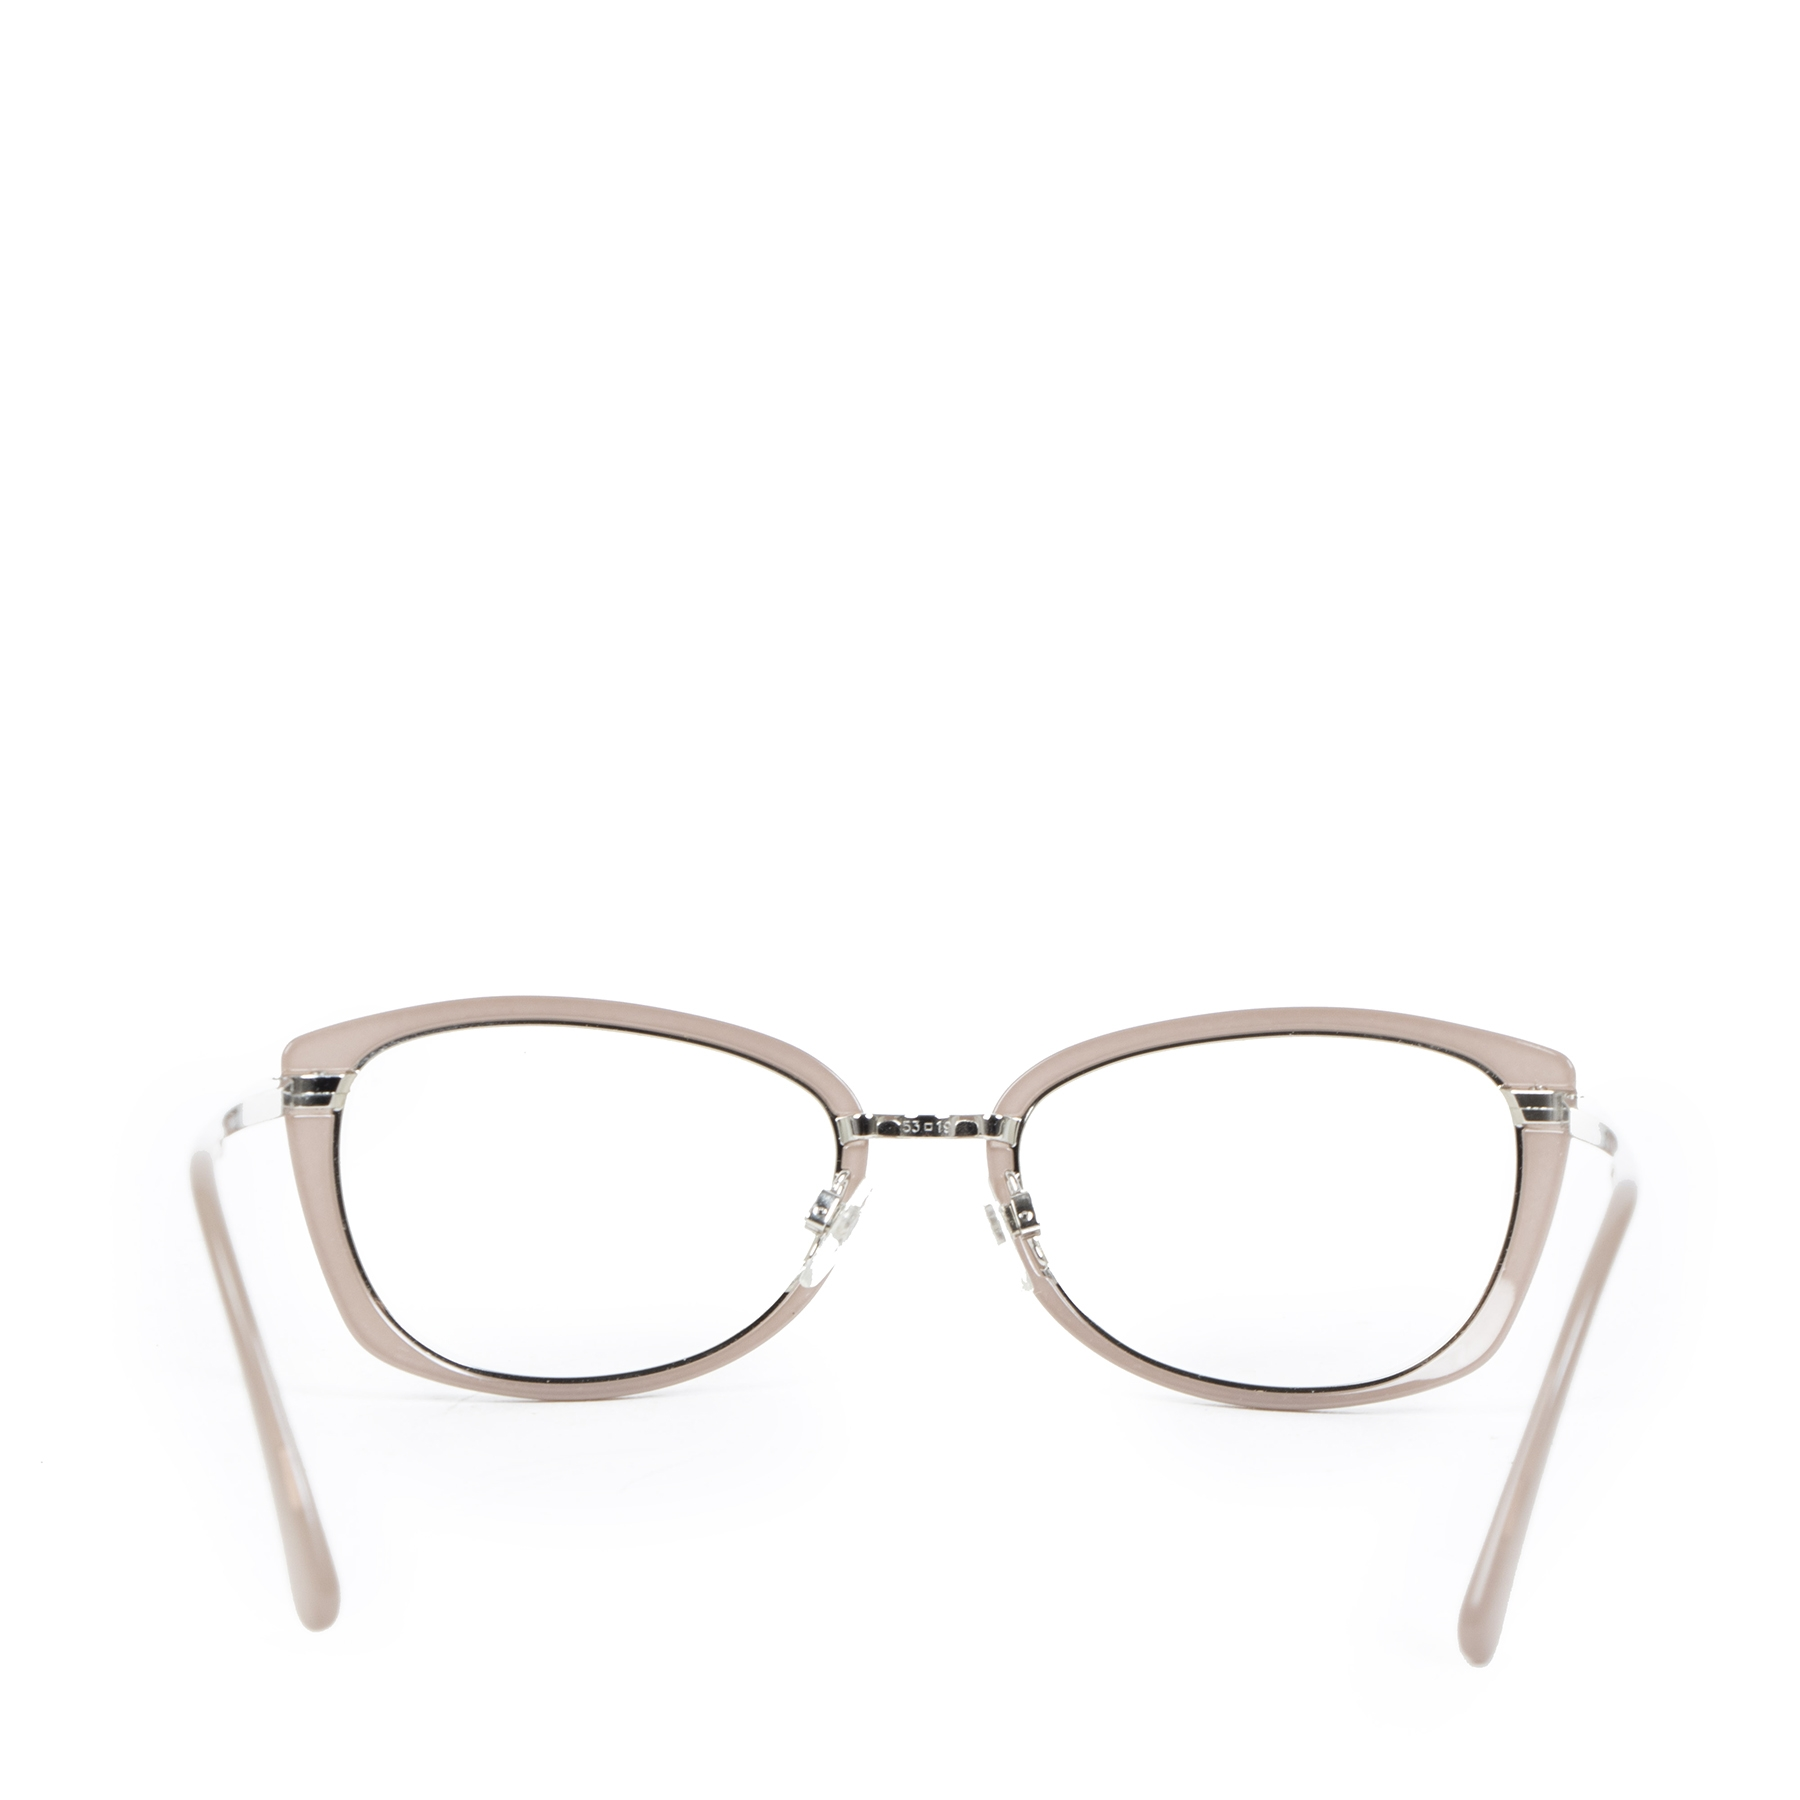 Authentic secondhand Chanel Dusty Pink Cat Eye Eyeglasses designer accessories designer brands fashion luxury vintage webshop safe secure online shopping worldwide shipping delivery